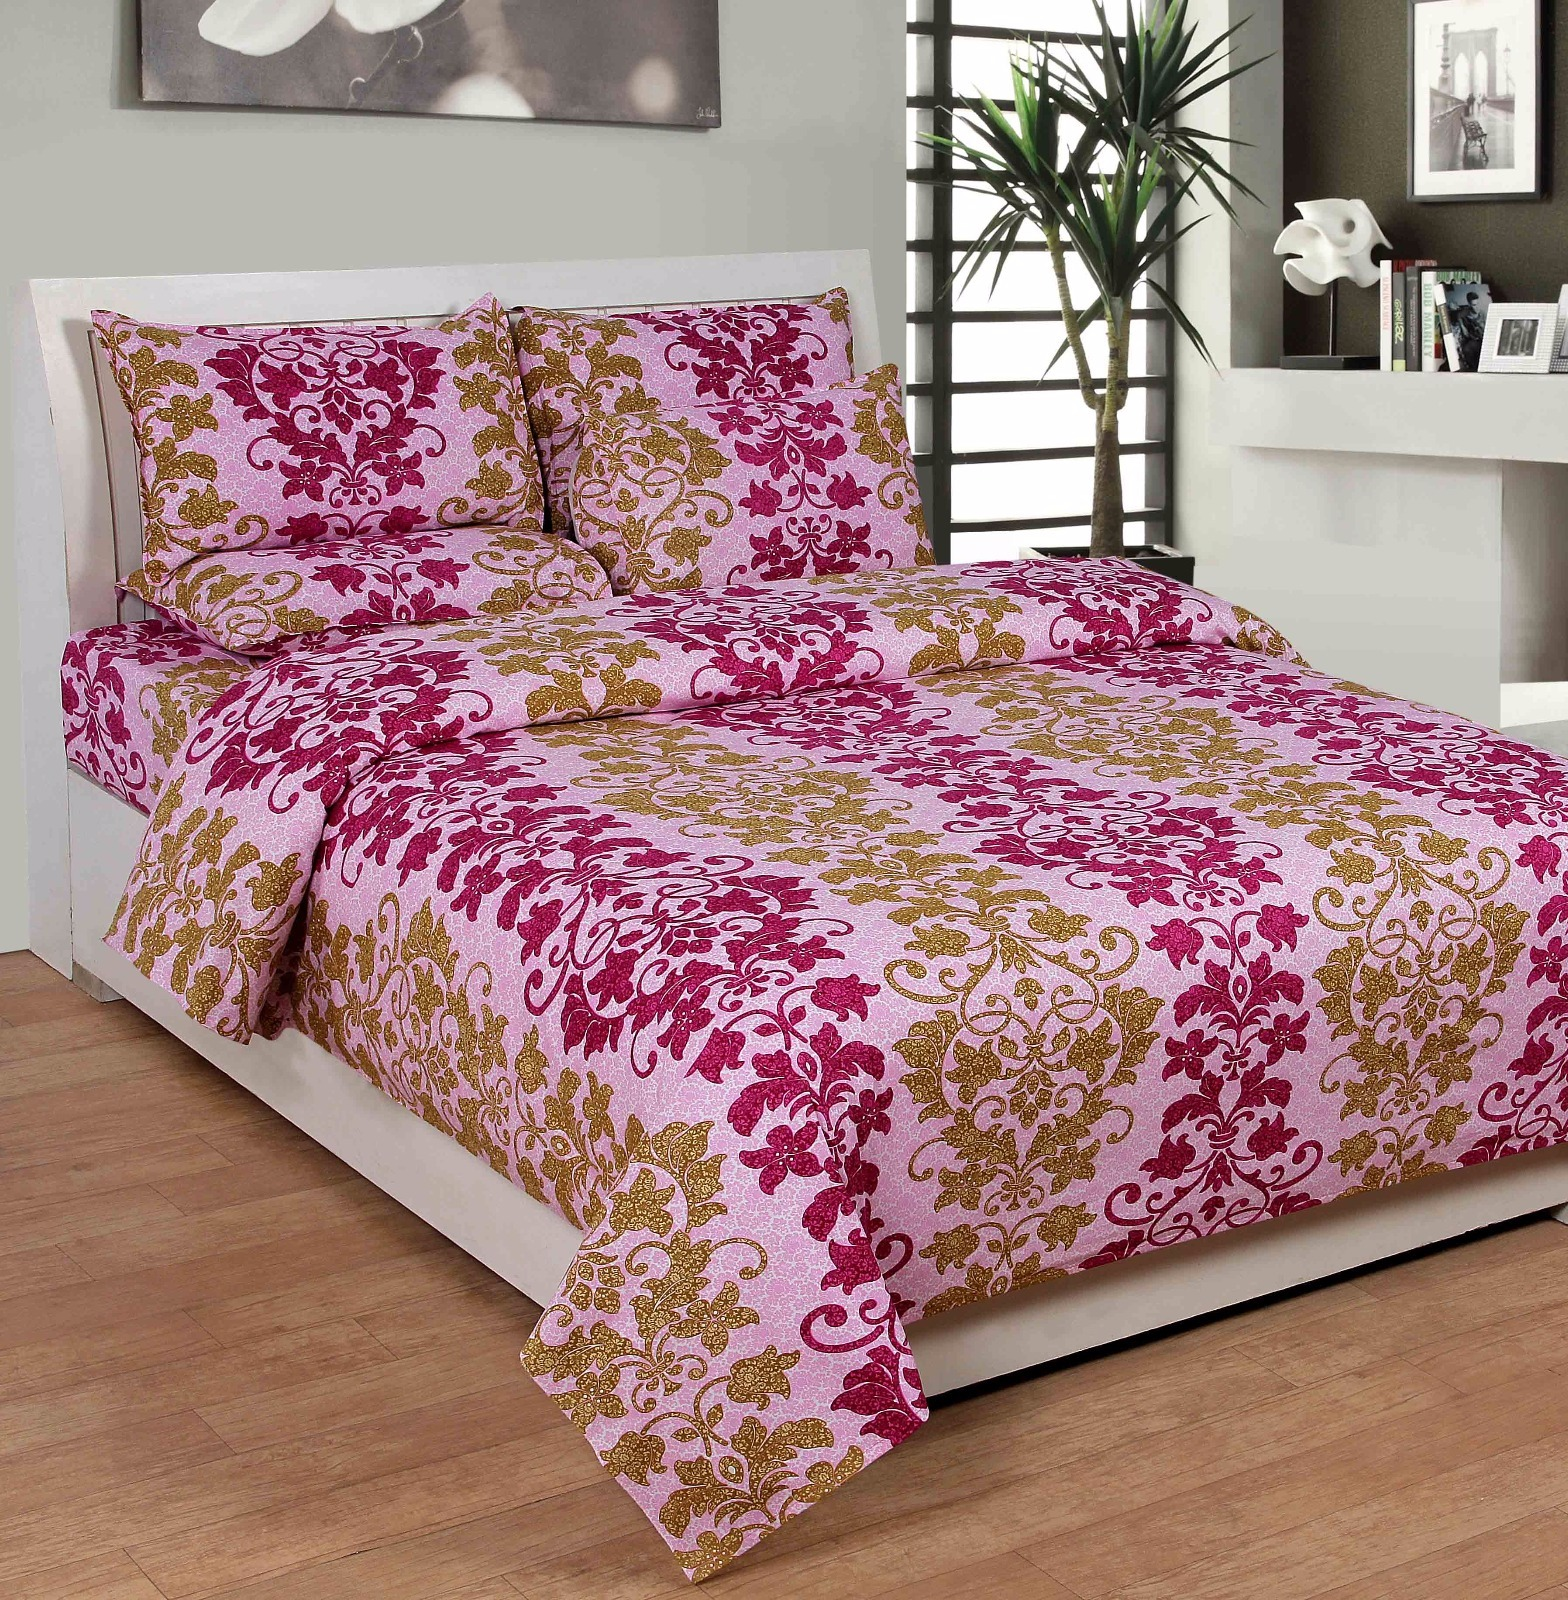 buy best deal bed sheetcottonwa0036 at 42 off in india kraftly june 2018. Black Bedroom Furniture Sets. Home Design Ideas